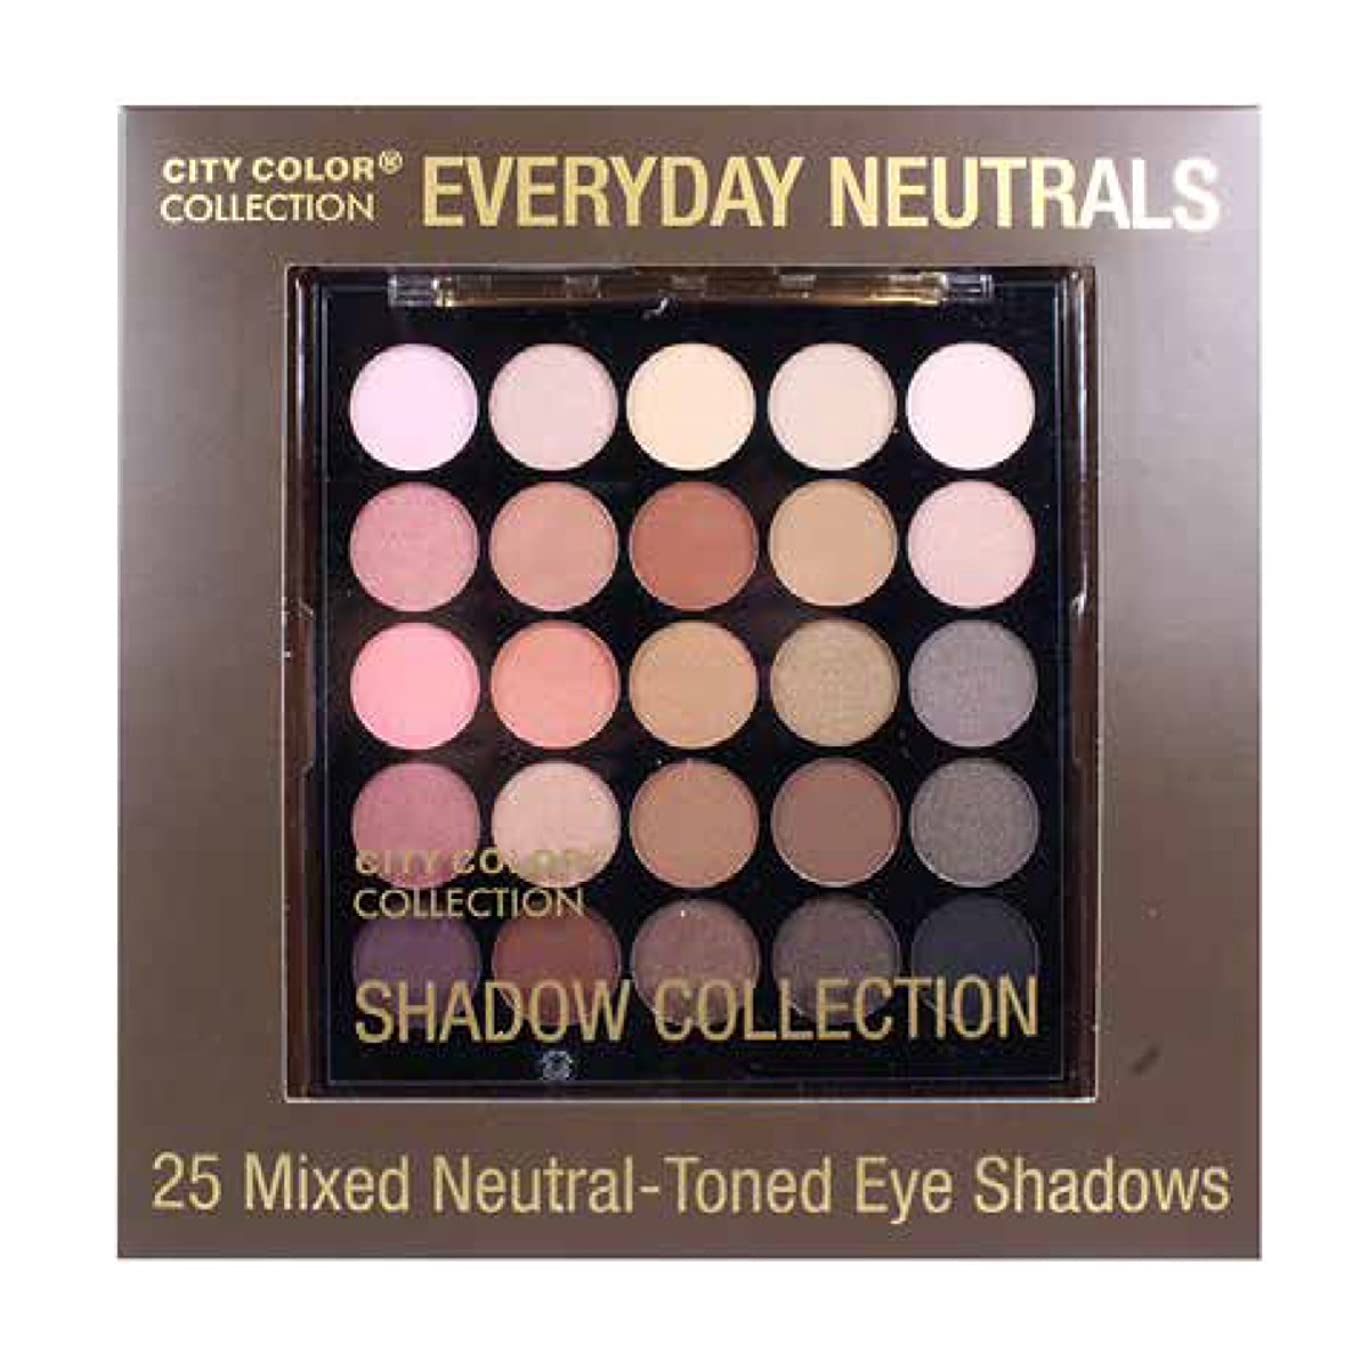 ヒョウ弱まる購入(3 Pack) CITY COLOR Collection Everyday Neutrals Eye Shadow Palette (並行輸入品)